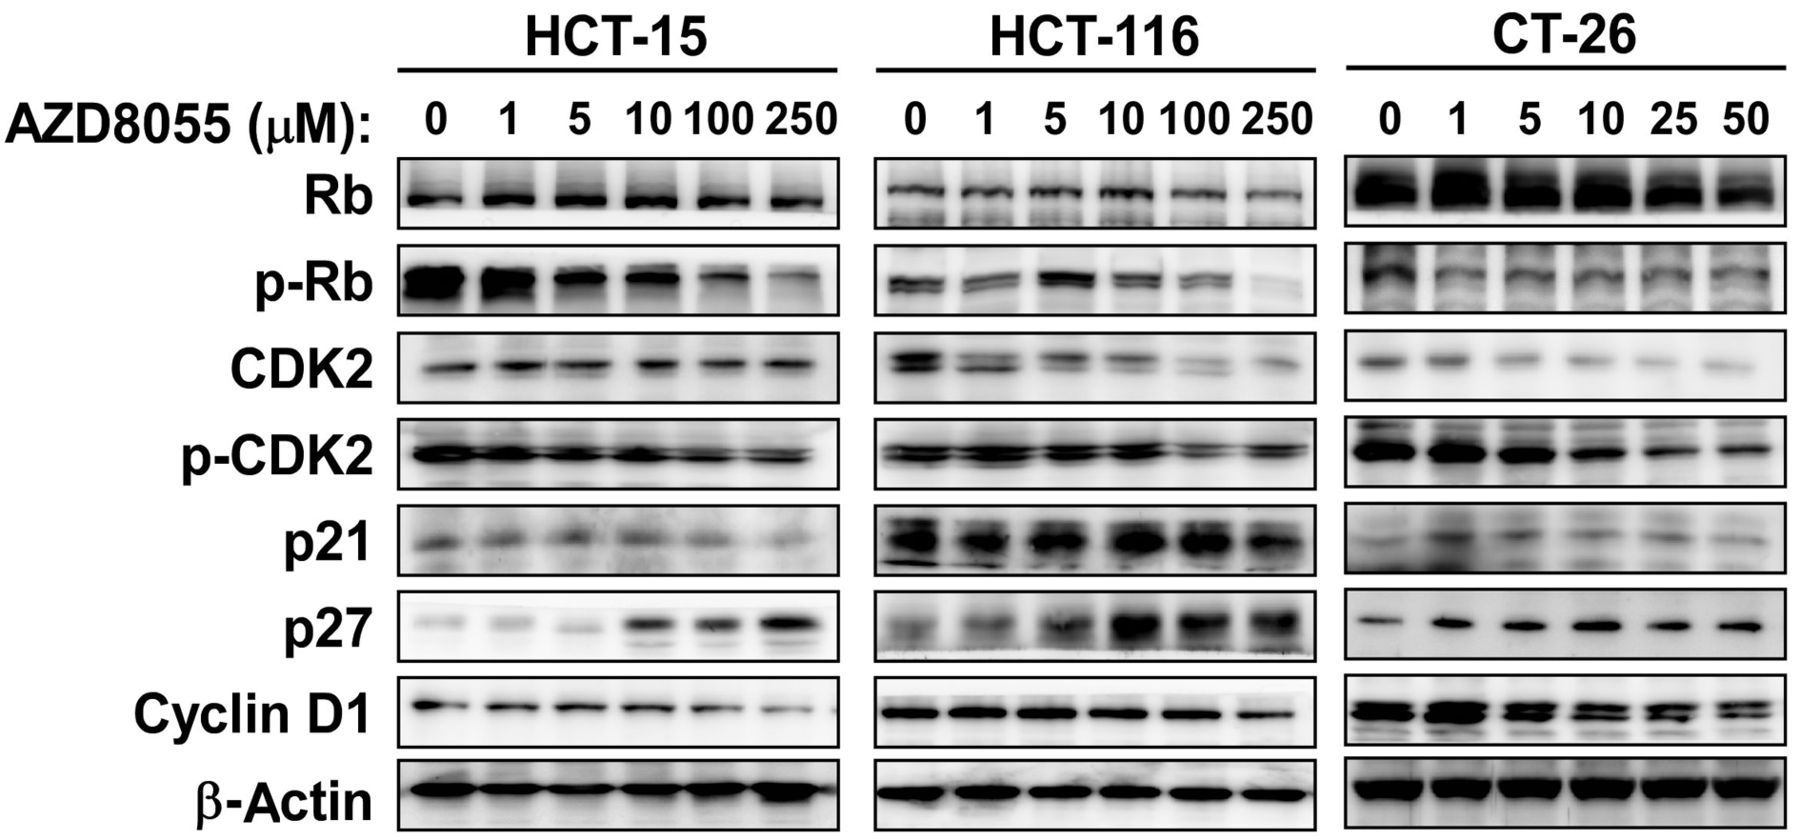 Azd8055 Exerts Antitumor Effects On Colon Cancer Cells By Inhibiting Mtor And Cell Cycle Progression